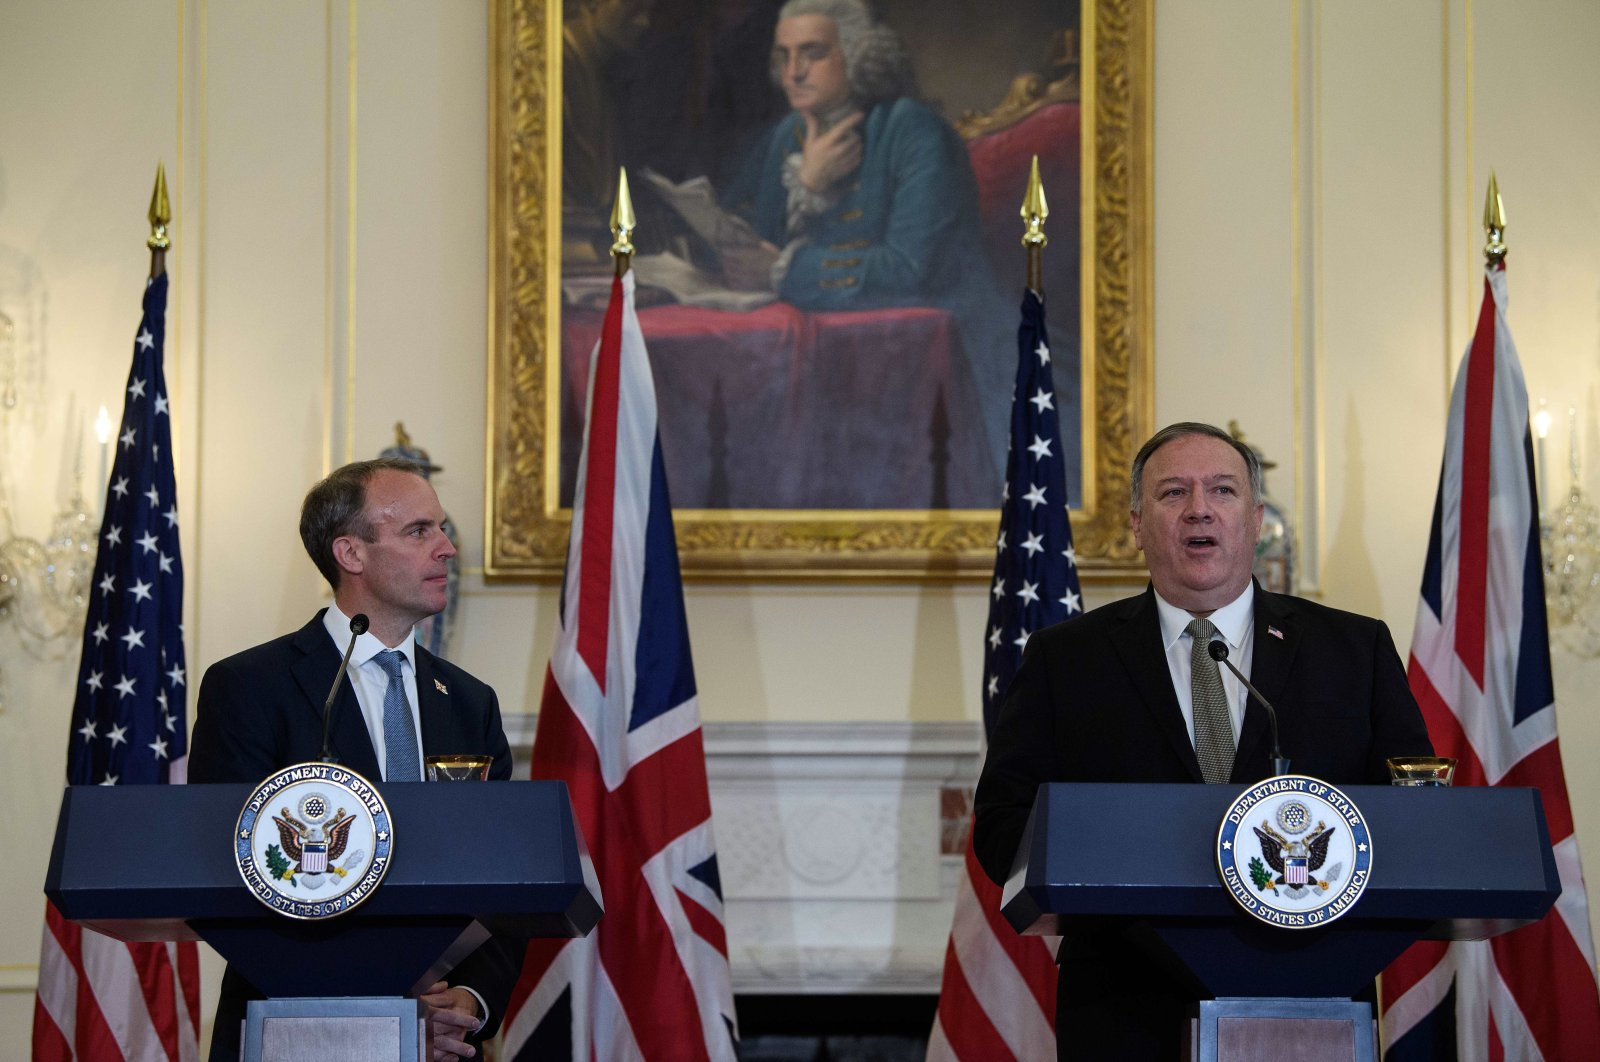 The U.S. Secretary of State Mike Pompeo speaks at a news conference with British Foreign Secretary Dominic Raab at the State Department, Washington, Sept. 16, 2020. (AP Photo)